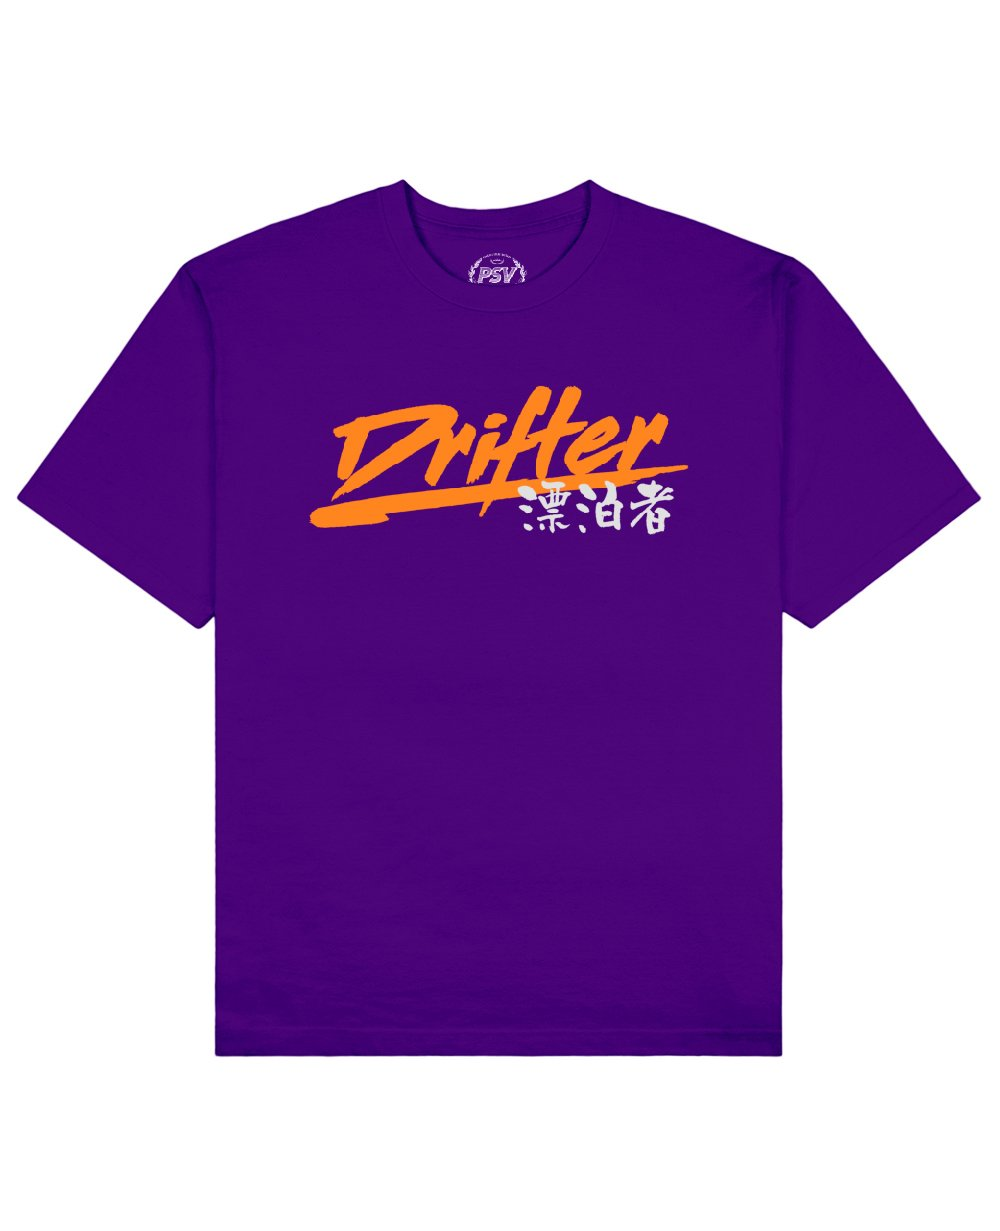 Drifter Print T-Shirt in Purple - T-Shirts - PSV - BRANMA